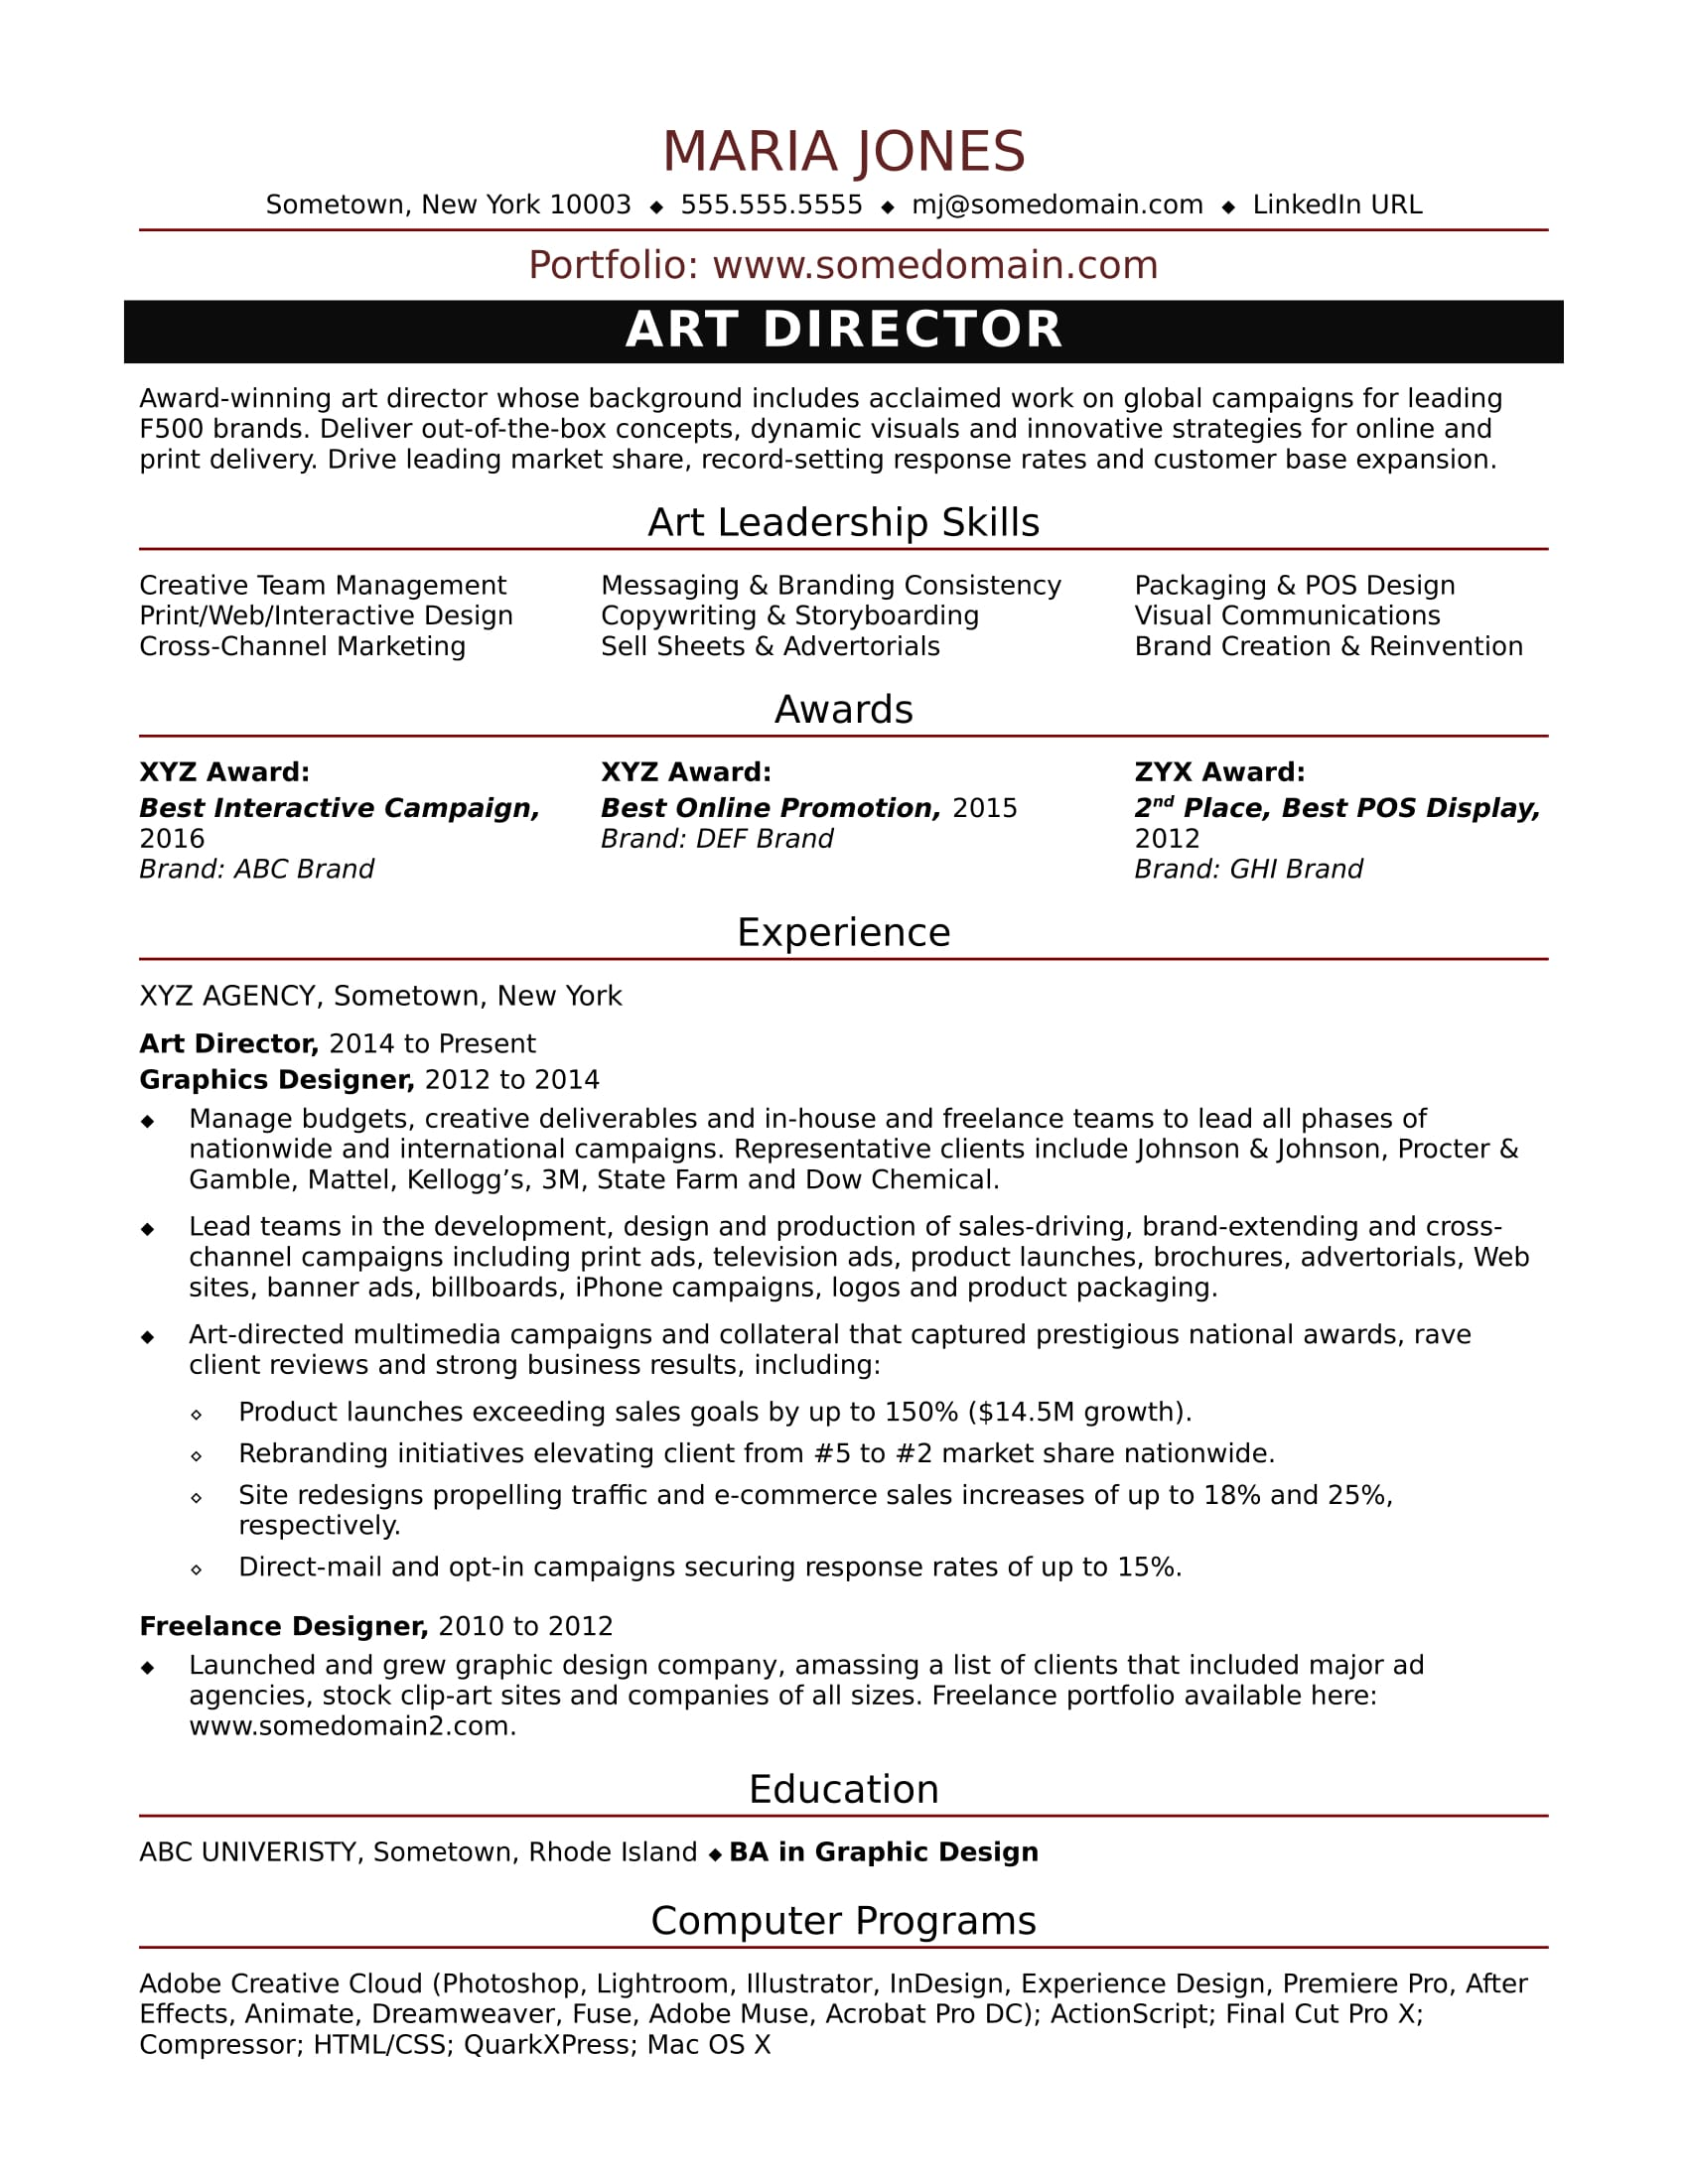 Sample Resume for a Midlevel Art Director Monstercom